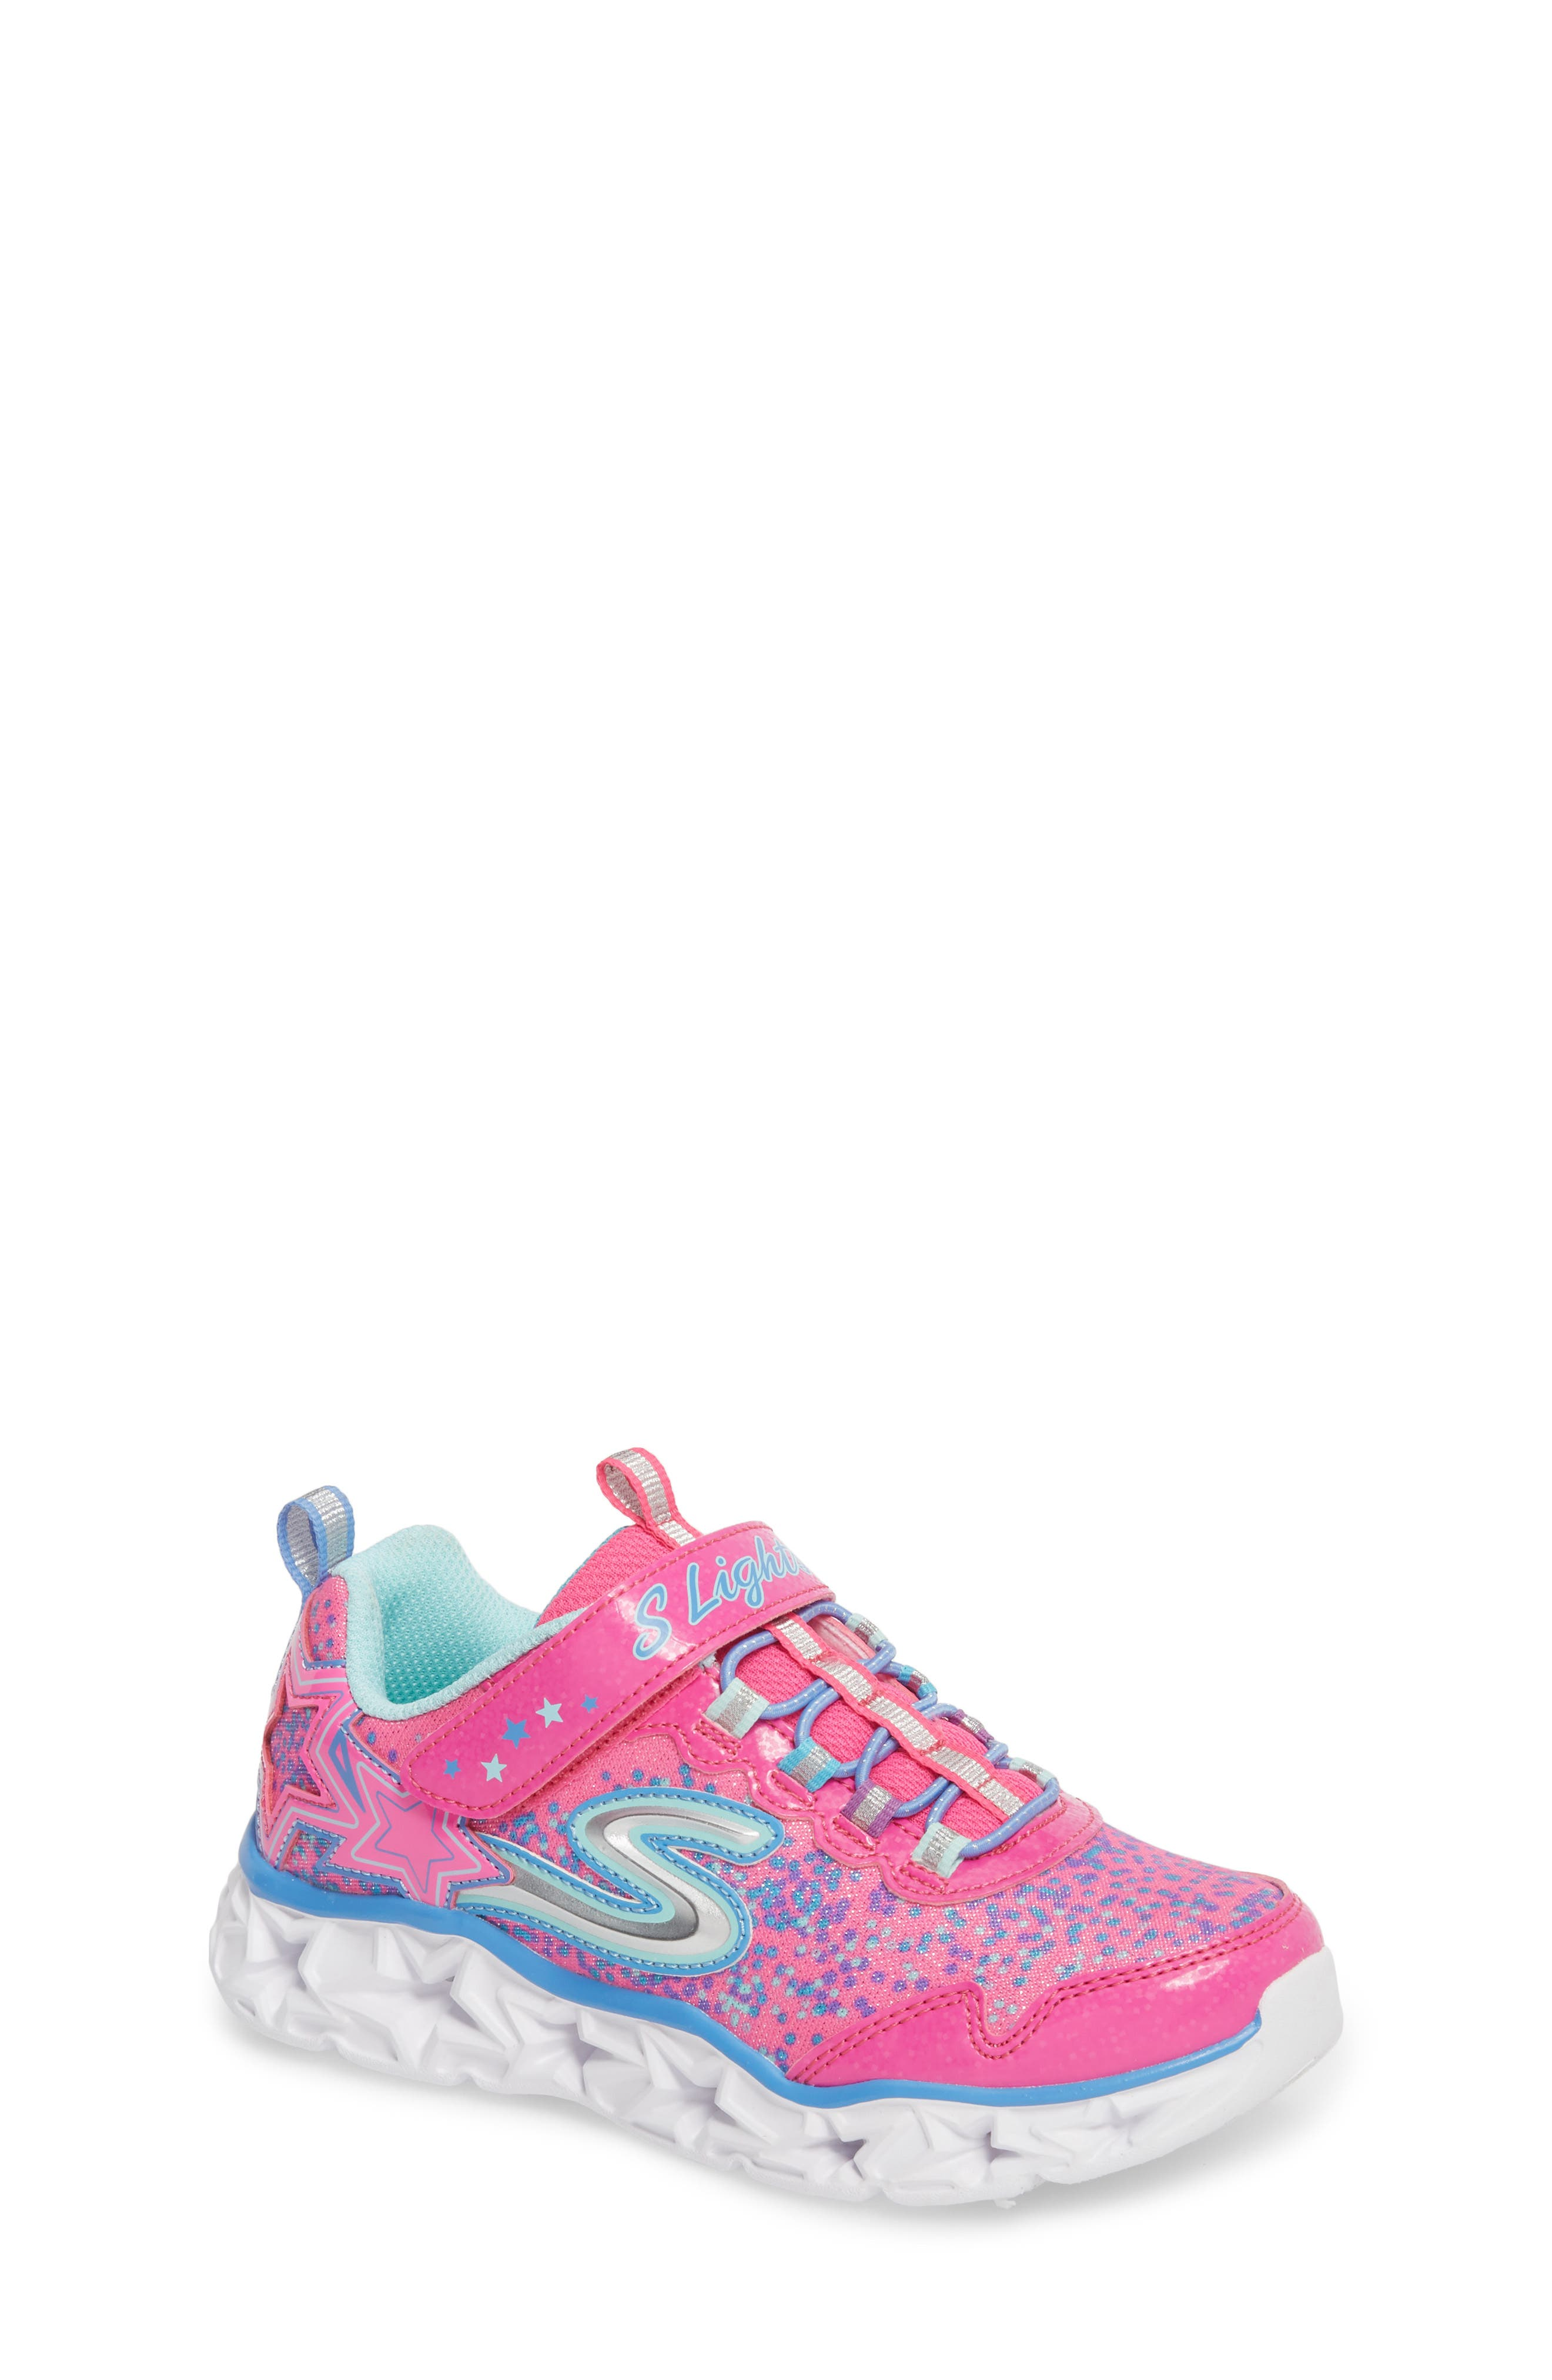 Galaxy Lights Sneakers,                         Main,                         color, 650